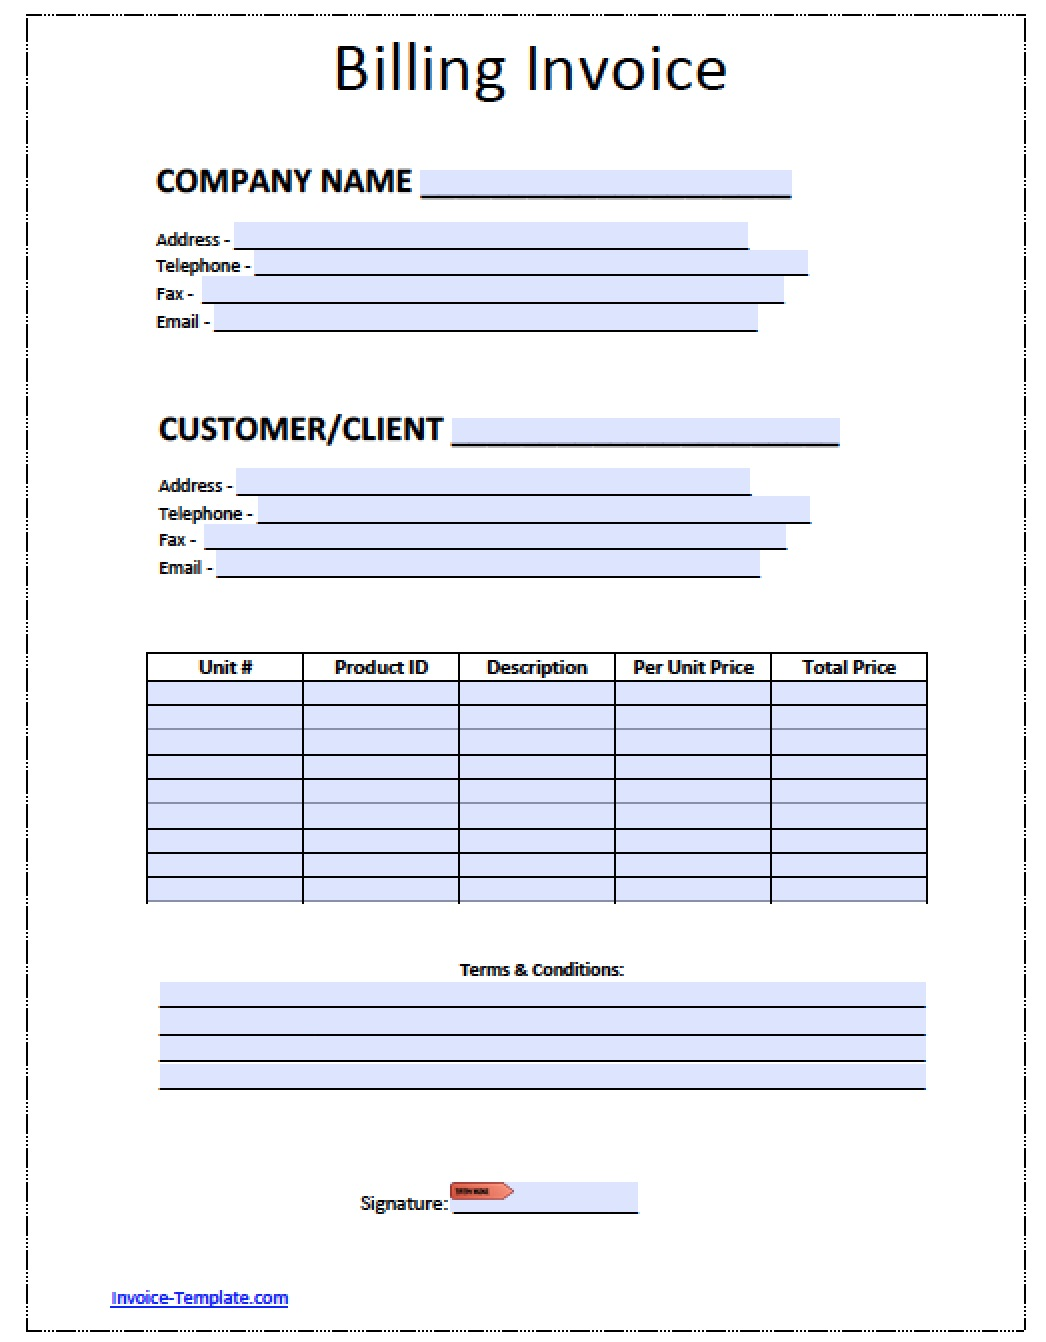 Aaaaeroincus  Surprising Billing Invoice Invoices Faq U Cloudflare Support Billing  With Exciting Free Billing Invoice Template  Excel  Pdf  Word Doc  Billing With Astounding Ford Escape Invoice Also Free Auto Repair Invoice Form In Addition International Shipping Invoice Template And Invoice Template Word  As Well As Podio Invoicing Additionally Sample Invoice For Legal Services From Happytomco With Aaaaeroincus  Exciting Billing Invoice Invoices Faq U Cloudflare Support Billing  With Astounding Free Billing Invoice Template  Excel  Pdf  Word Doc  Billing And Surprising Ford Escape Invoice Also Free Auto Repair Invoice Form In Addition International Shipping Invoice Template From Happytomco